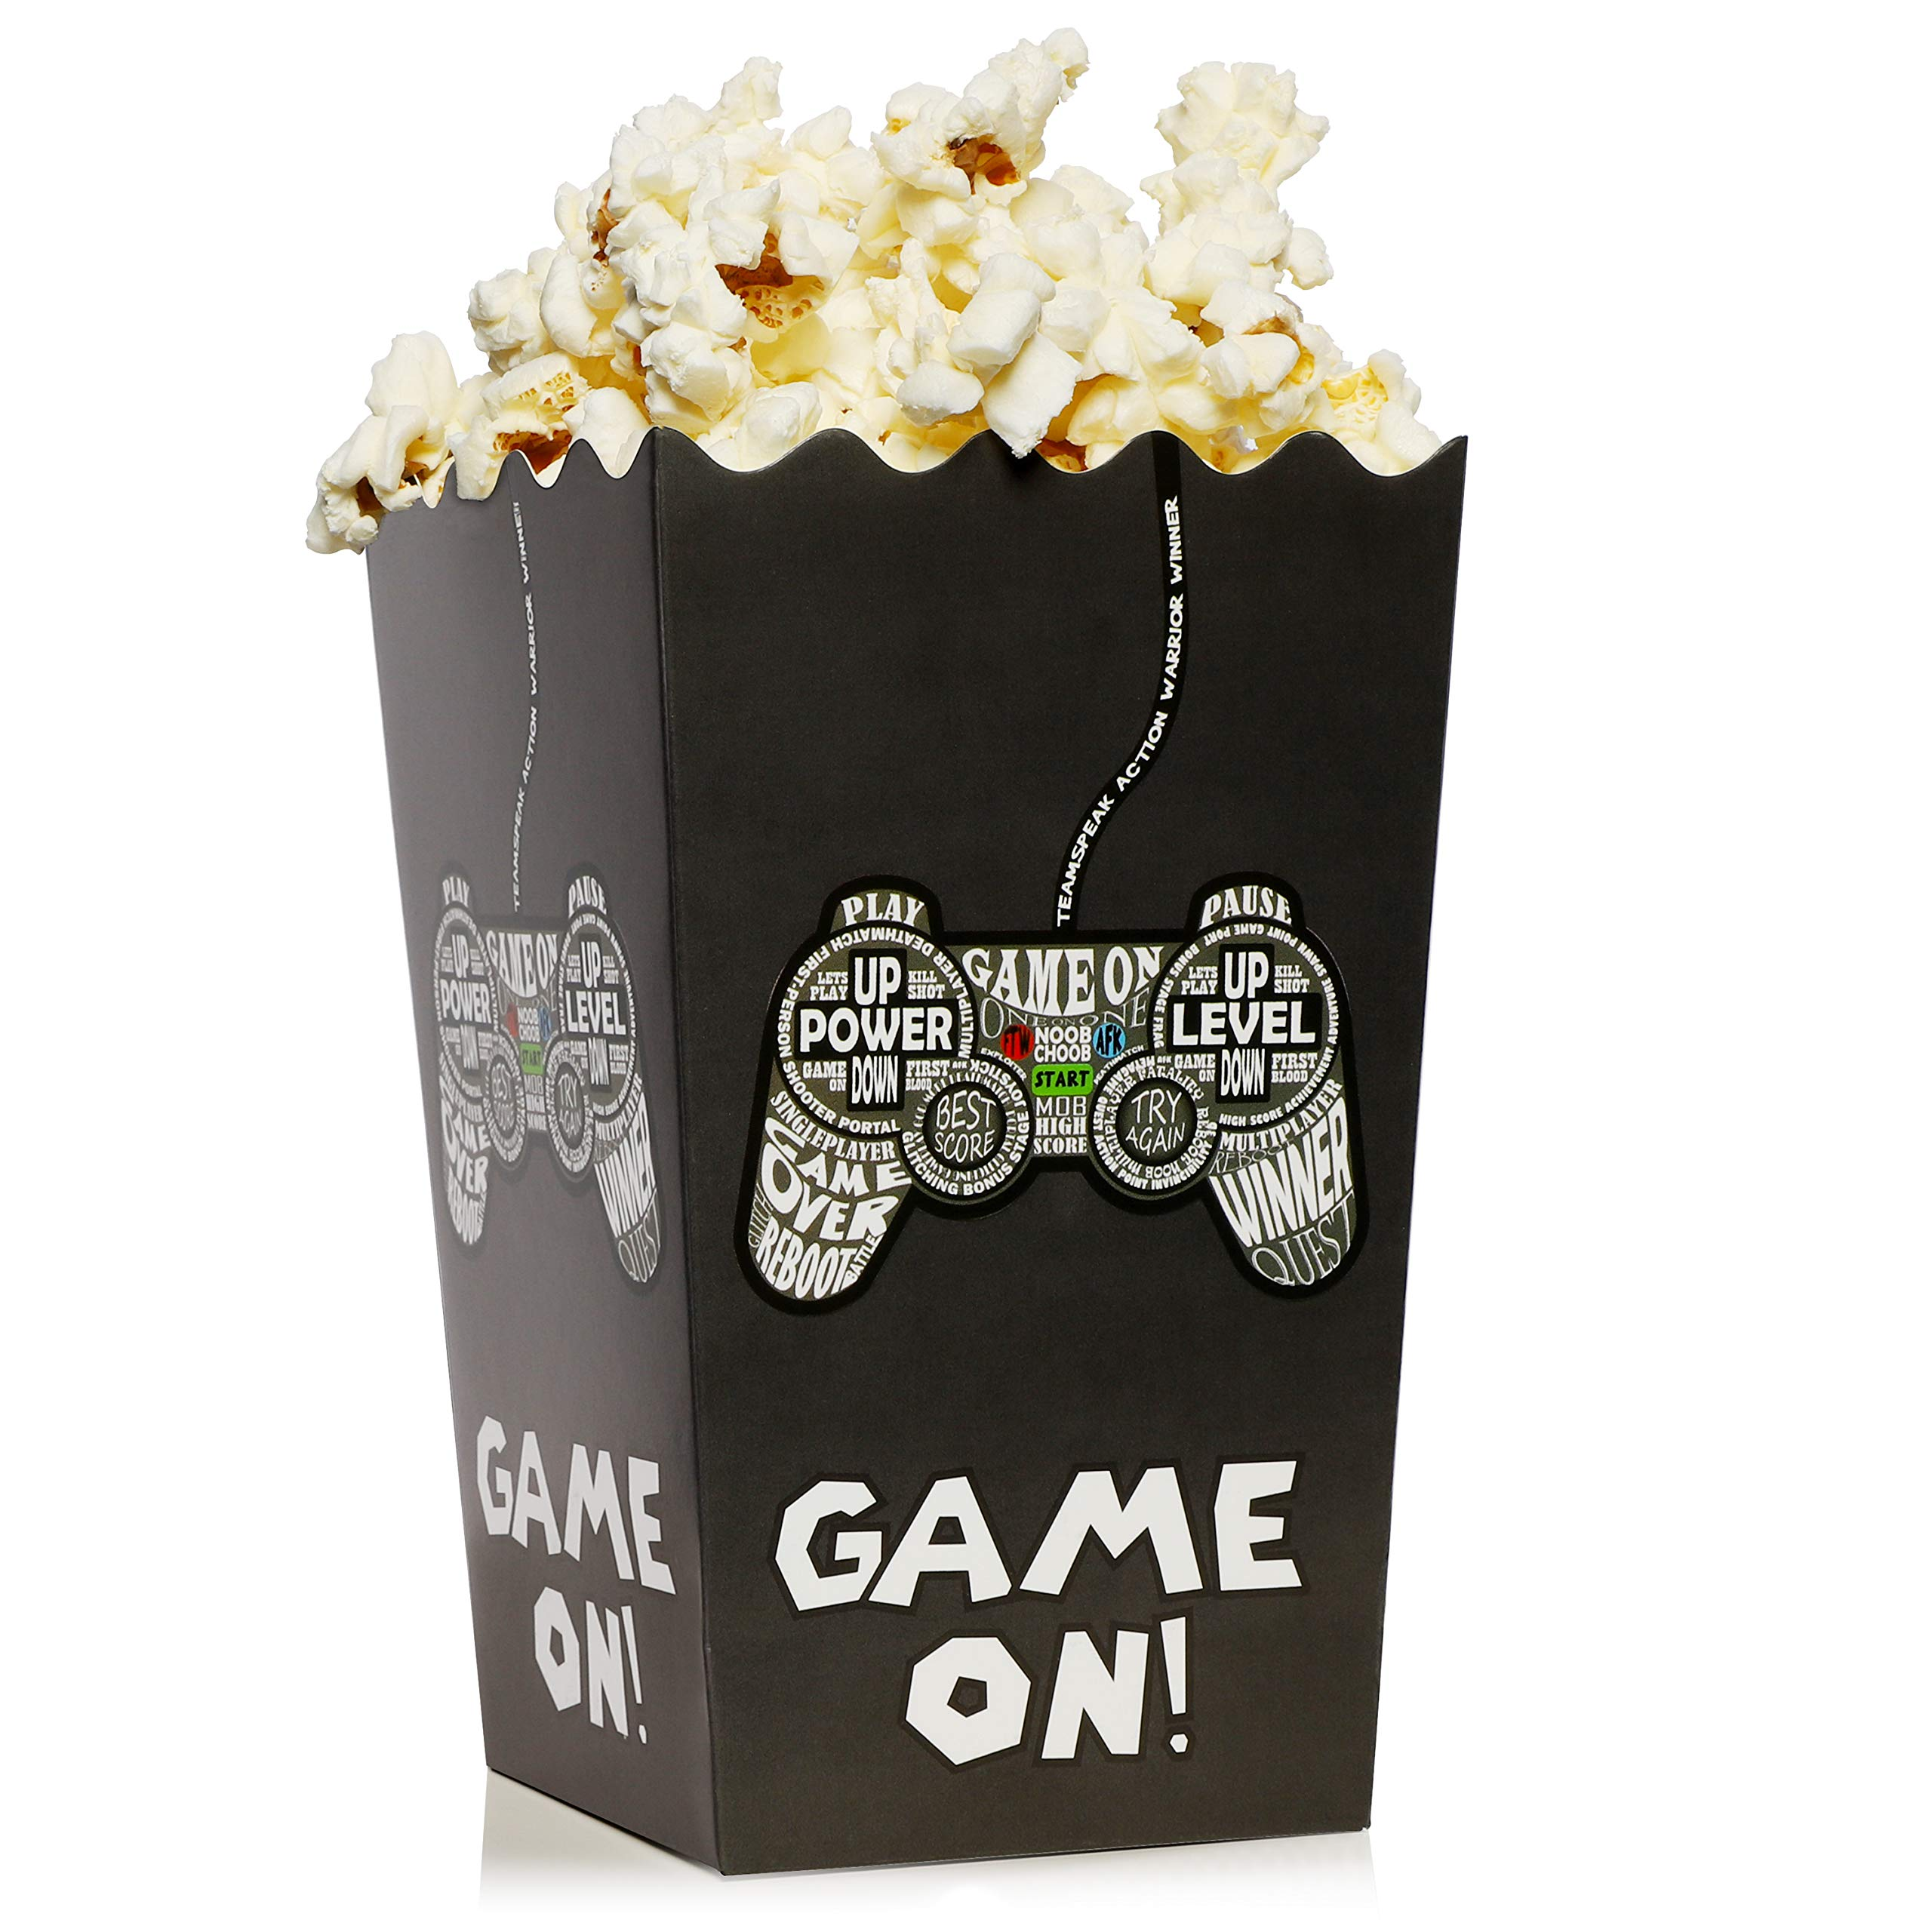 Juvale Set of 100 Mini 5x3 Inch Popcorn Favor Boxes - Video Game Party Supplies Candy Snack Containers for Birthdays and Parties, 3.3 x 5.5 Inches by Juvale